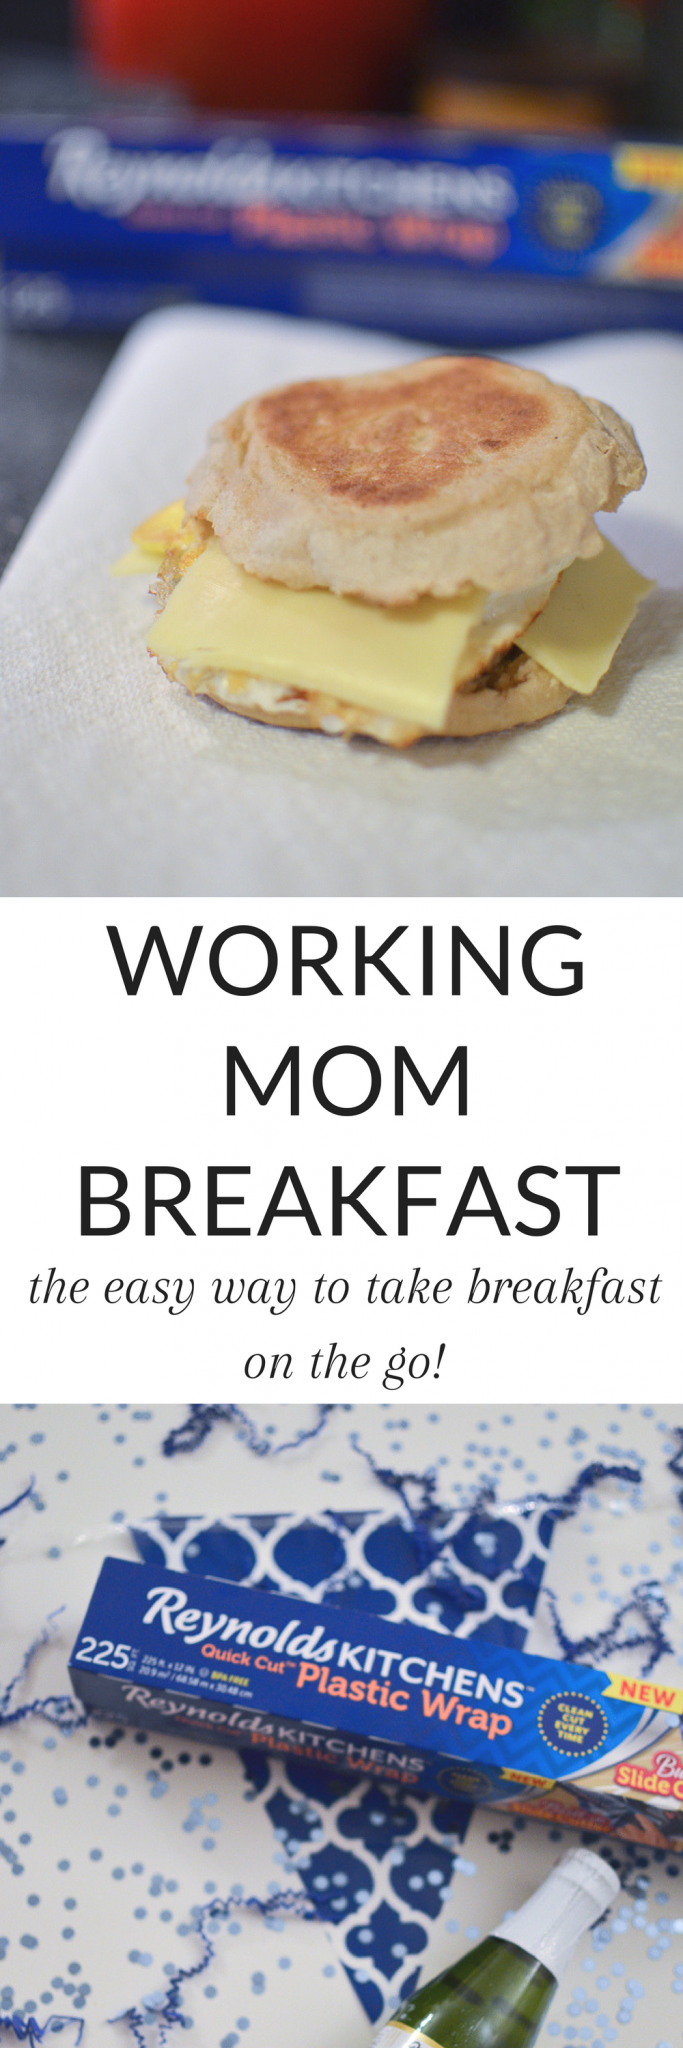 As a working mom, breakfast is a staple in my life - and I need it to be fast and easy. Read about my super easy hack for taking breakfast on the go, and the easiest working mom breakfast! #workingmom #breakfast #breakfasthack